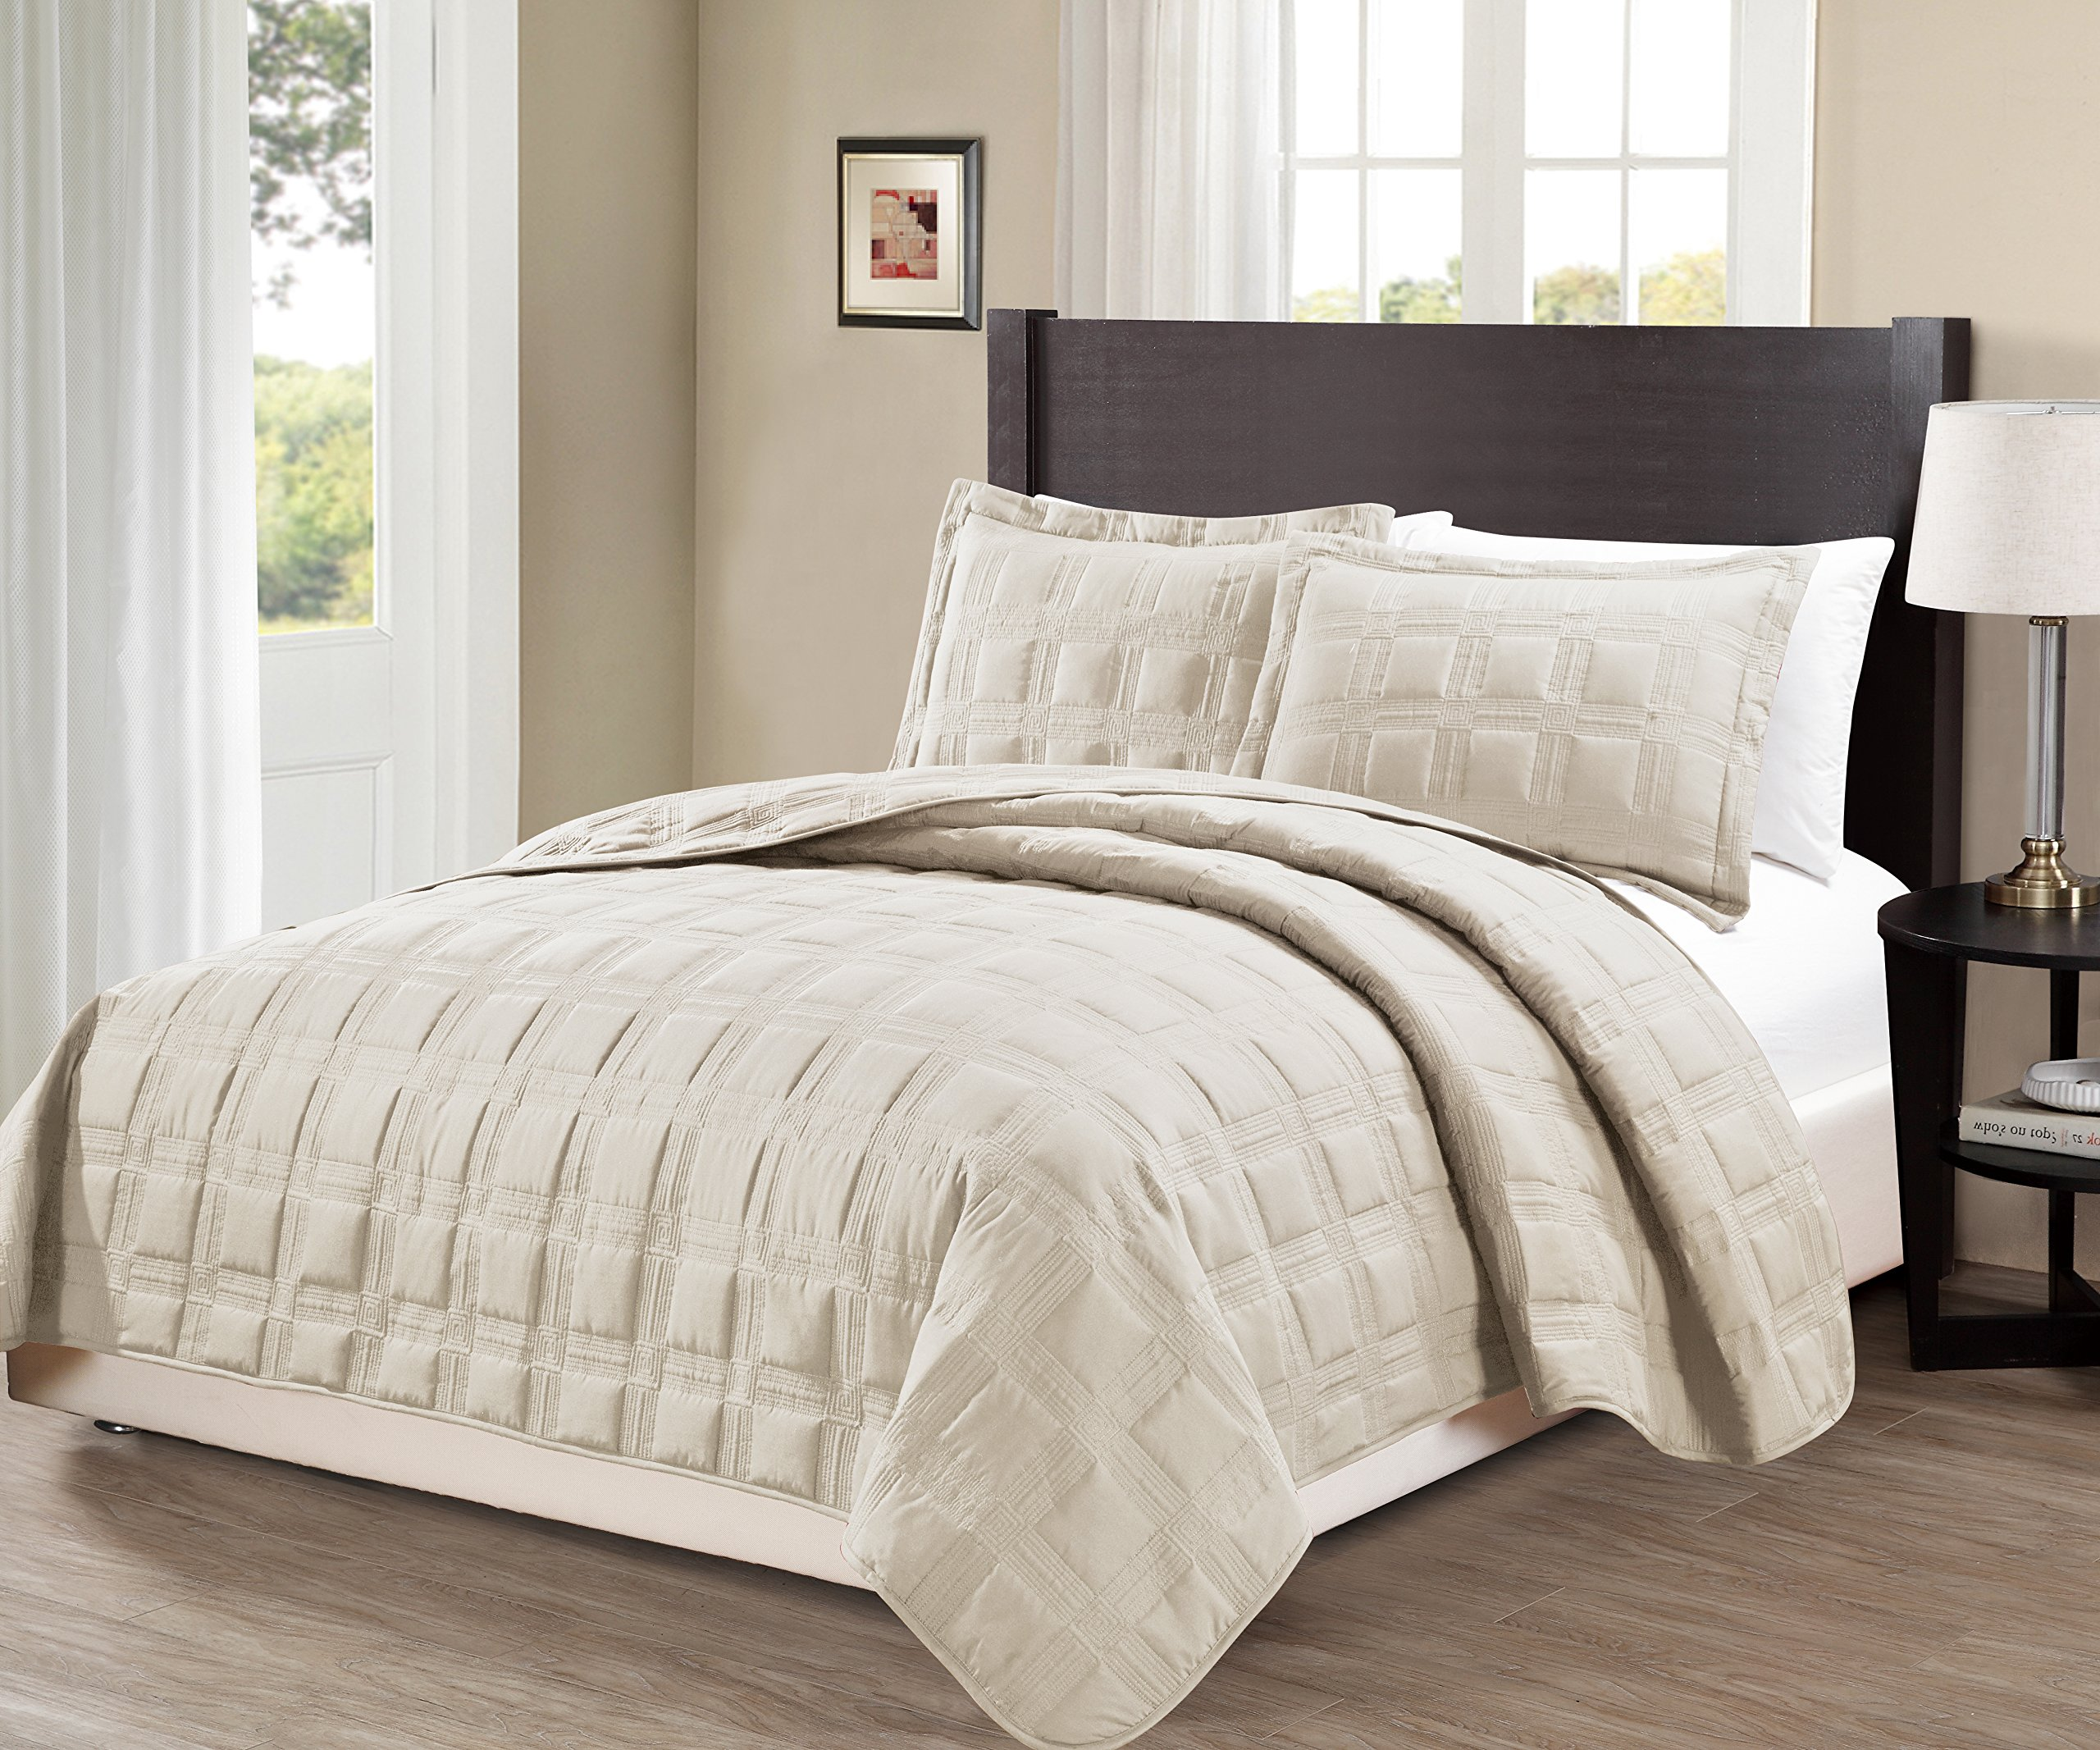 MK Home Mk Collection King/California king over size 118''x106'' 3 pc Target Bedspread Bed-cover Quilted Embroidery solid Beige New